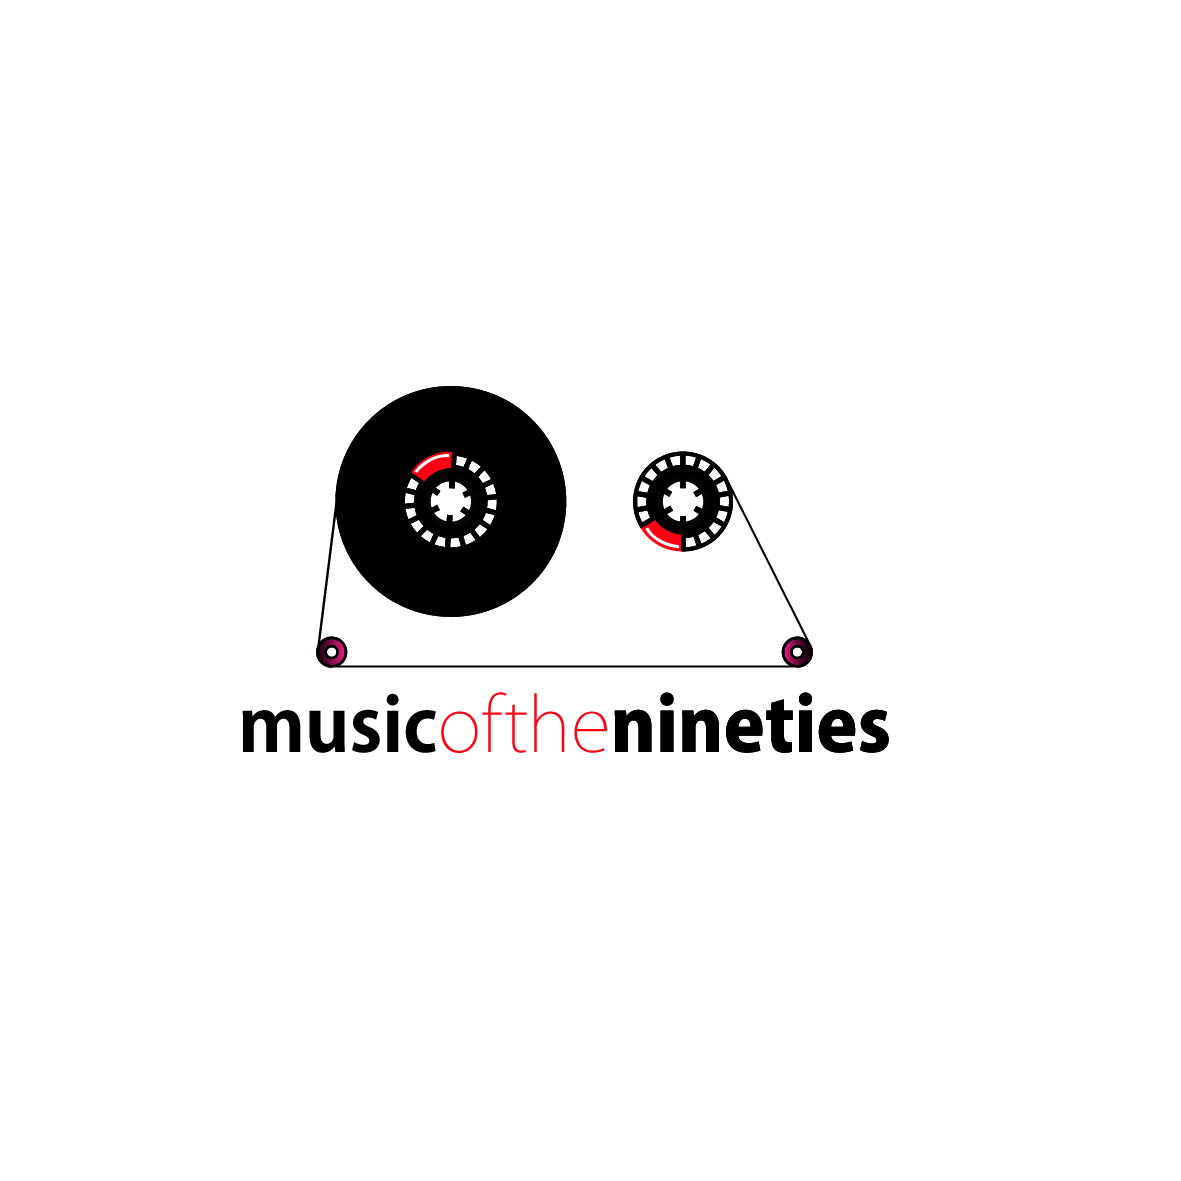 Logo Design by ex - Entry No. 17 in the Logo Design Contest Music of the Nineties Logo.